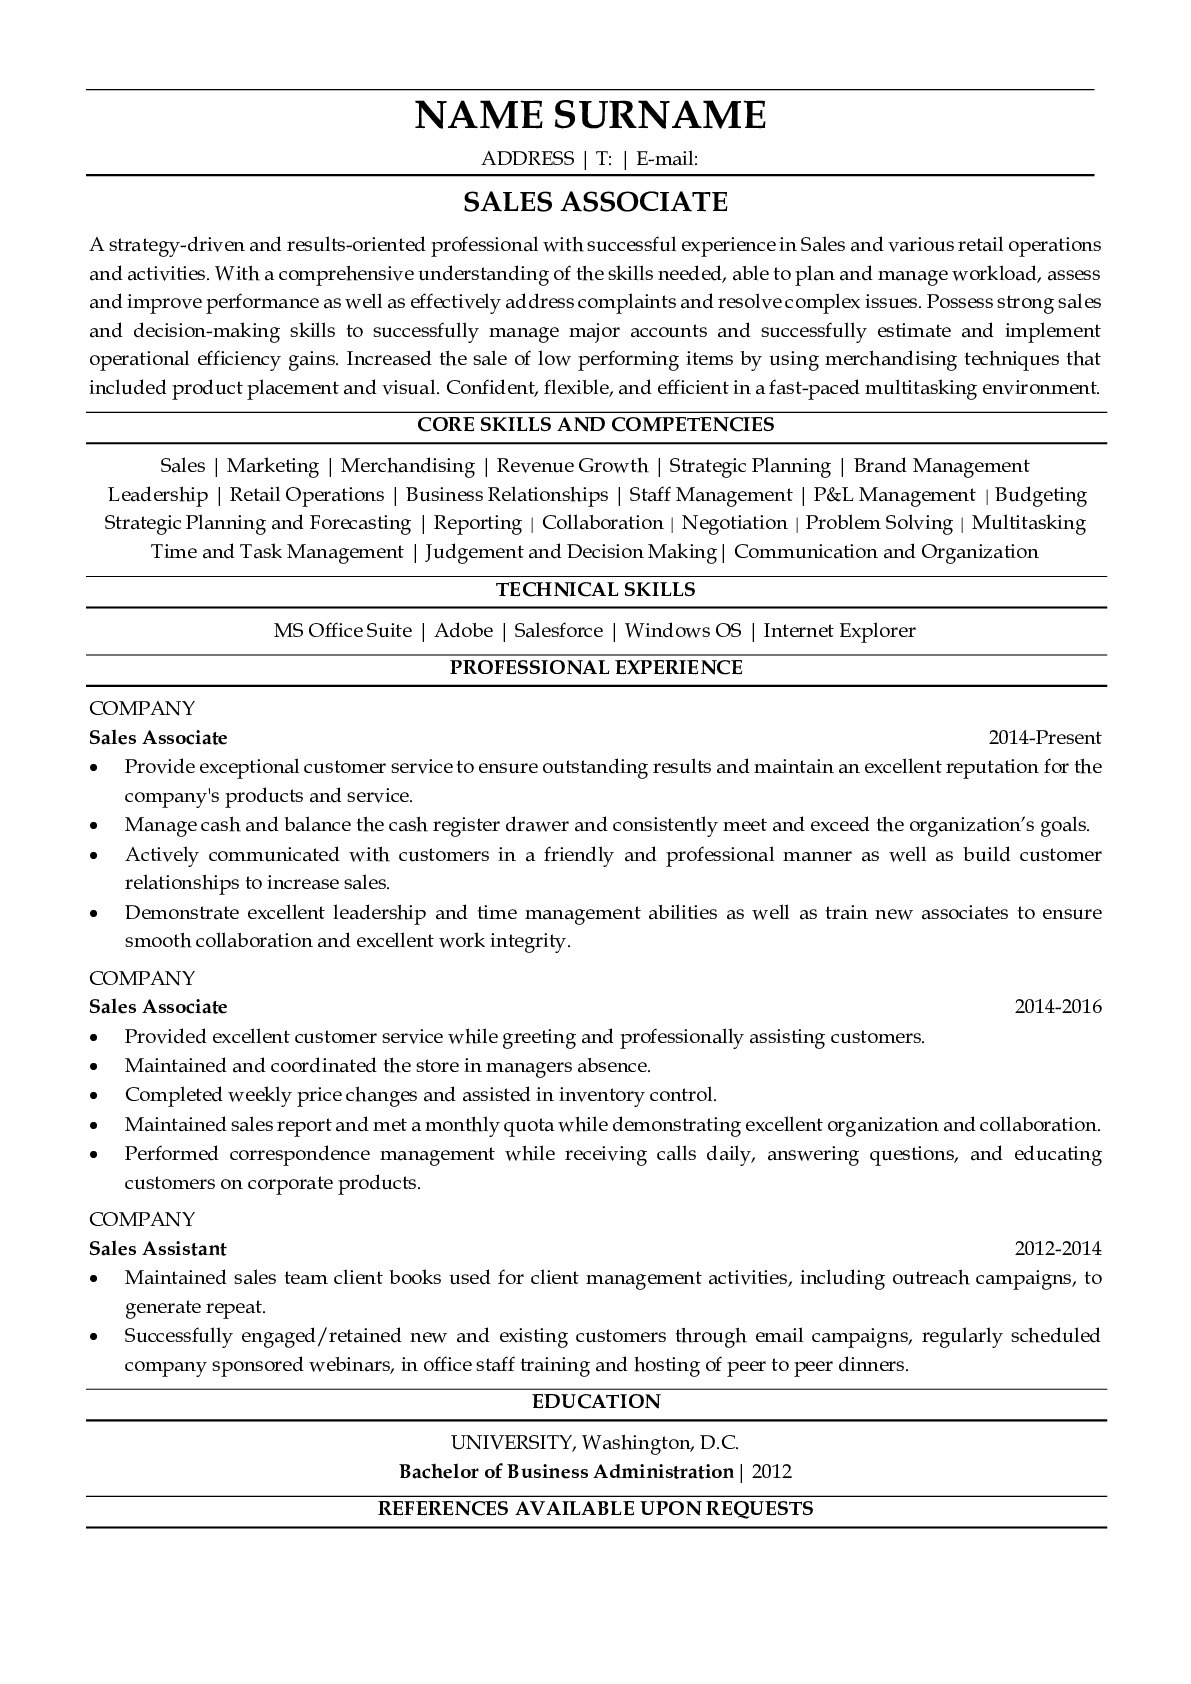 Resume Example for Sales Associate